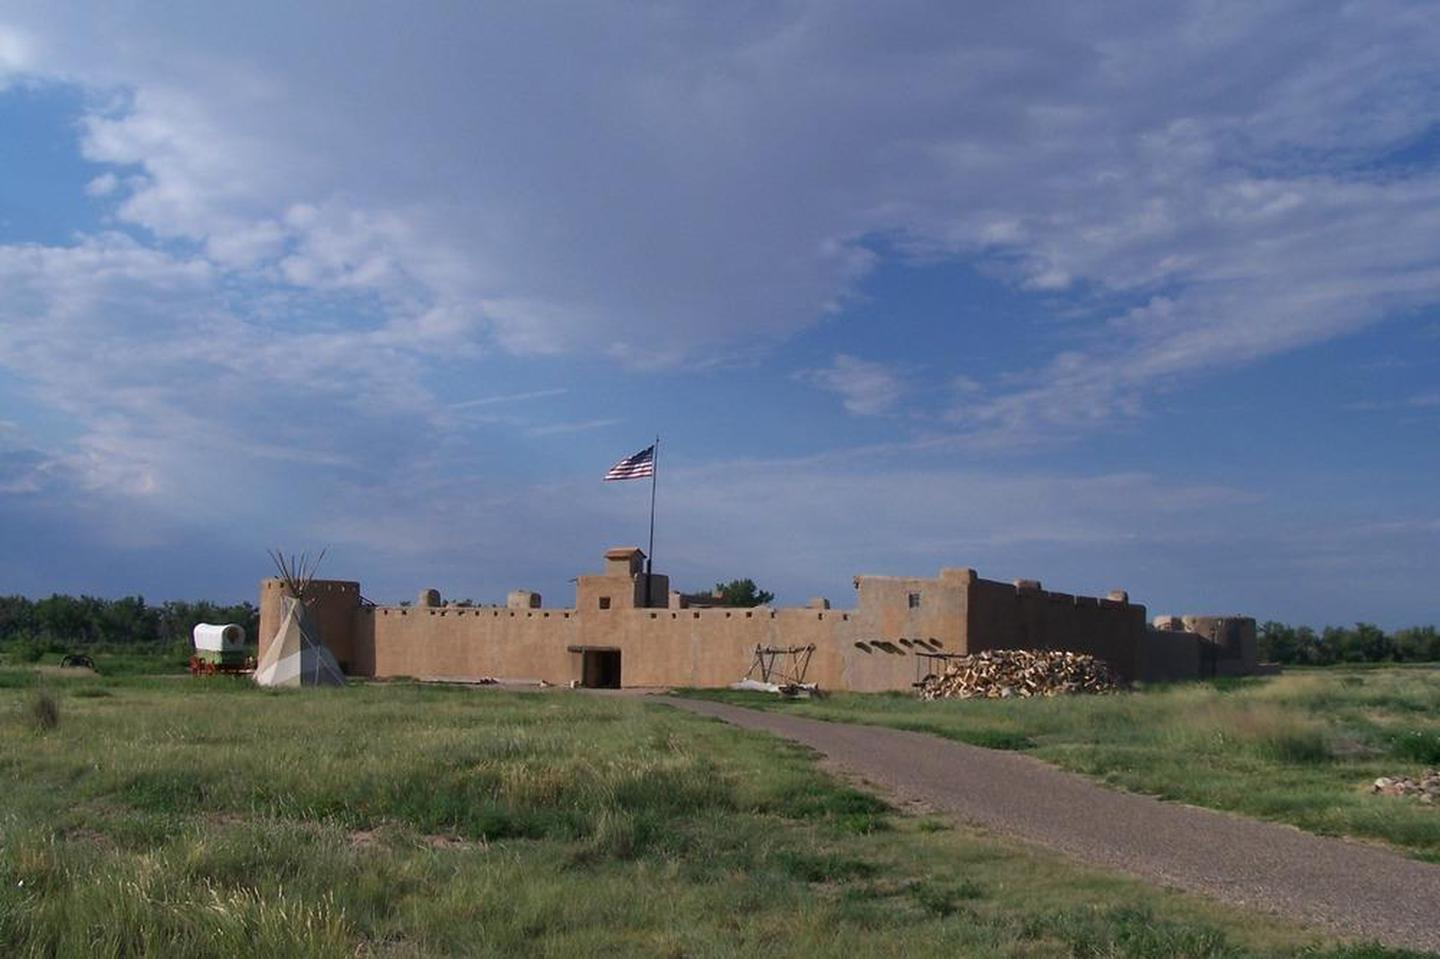 Bent's Old FortFor much of its 16-year history, the fort was the only major permanent white settlement on the Santa Fe Trail between Missouri and the Mexican settlements.